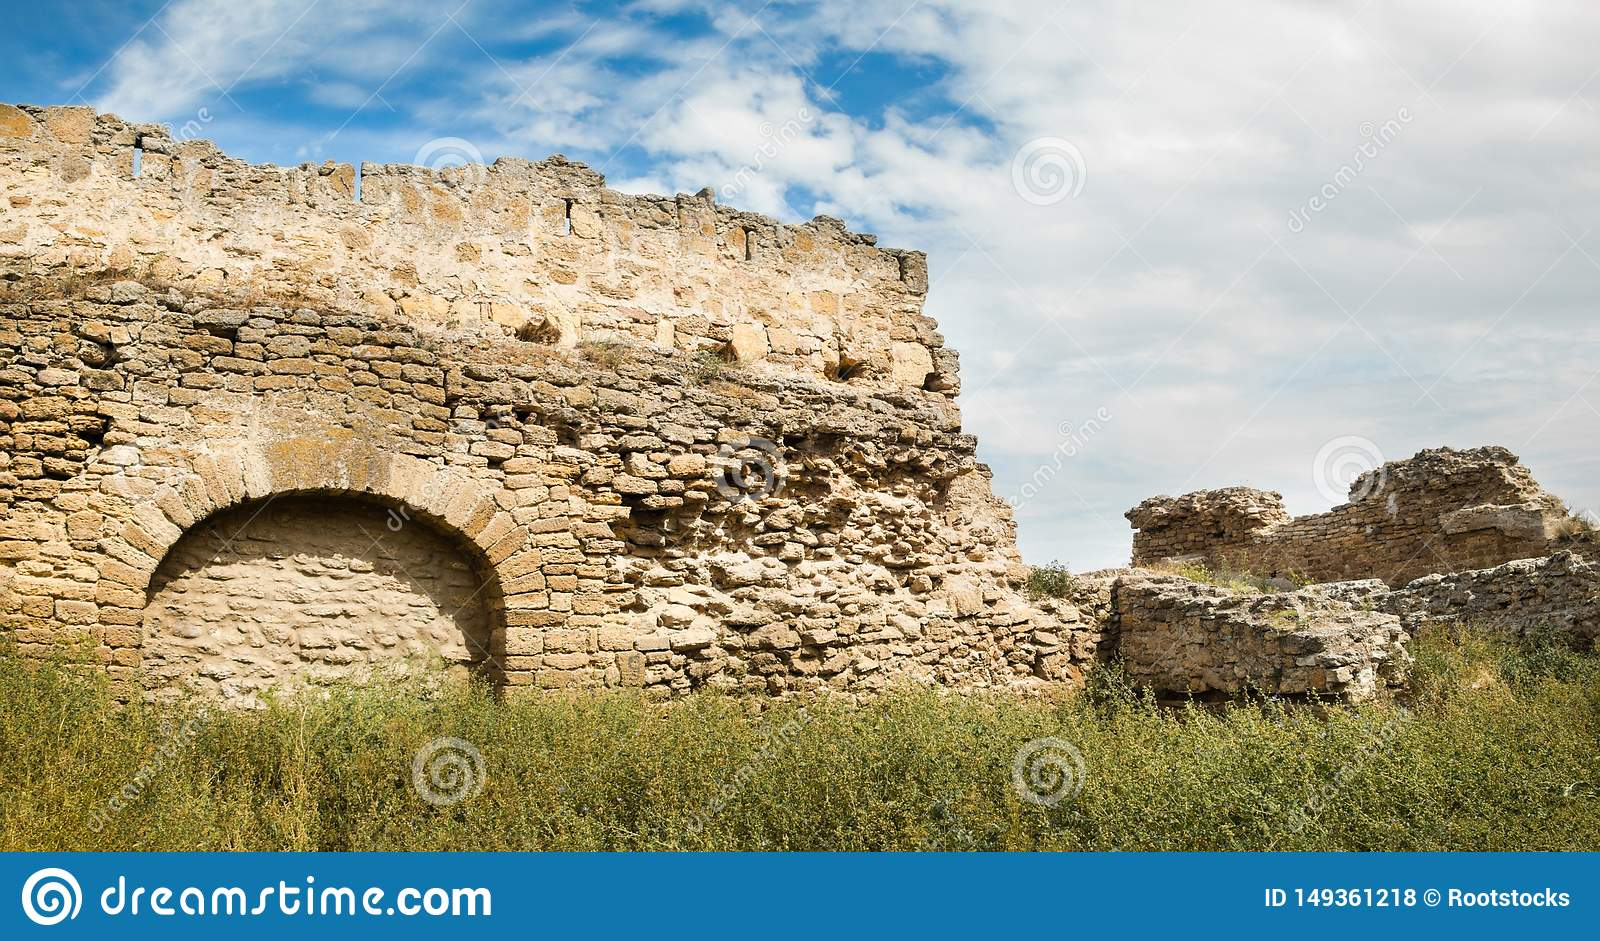 The walls of the old fortress. Akkerman in Ukraine